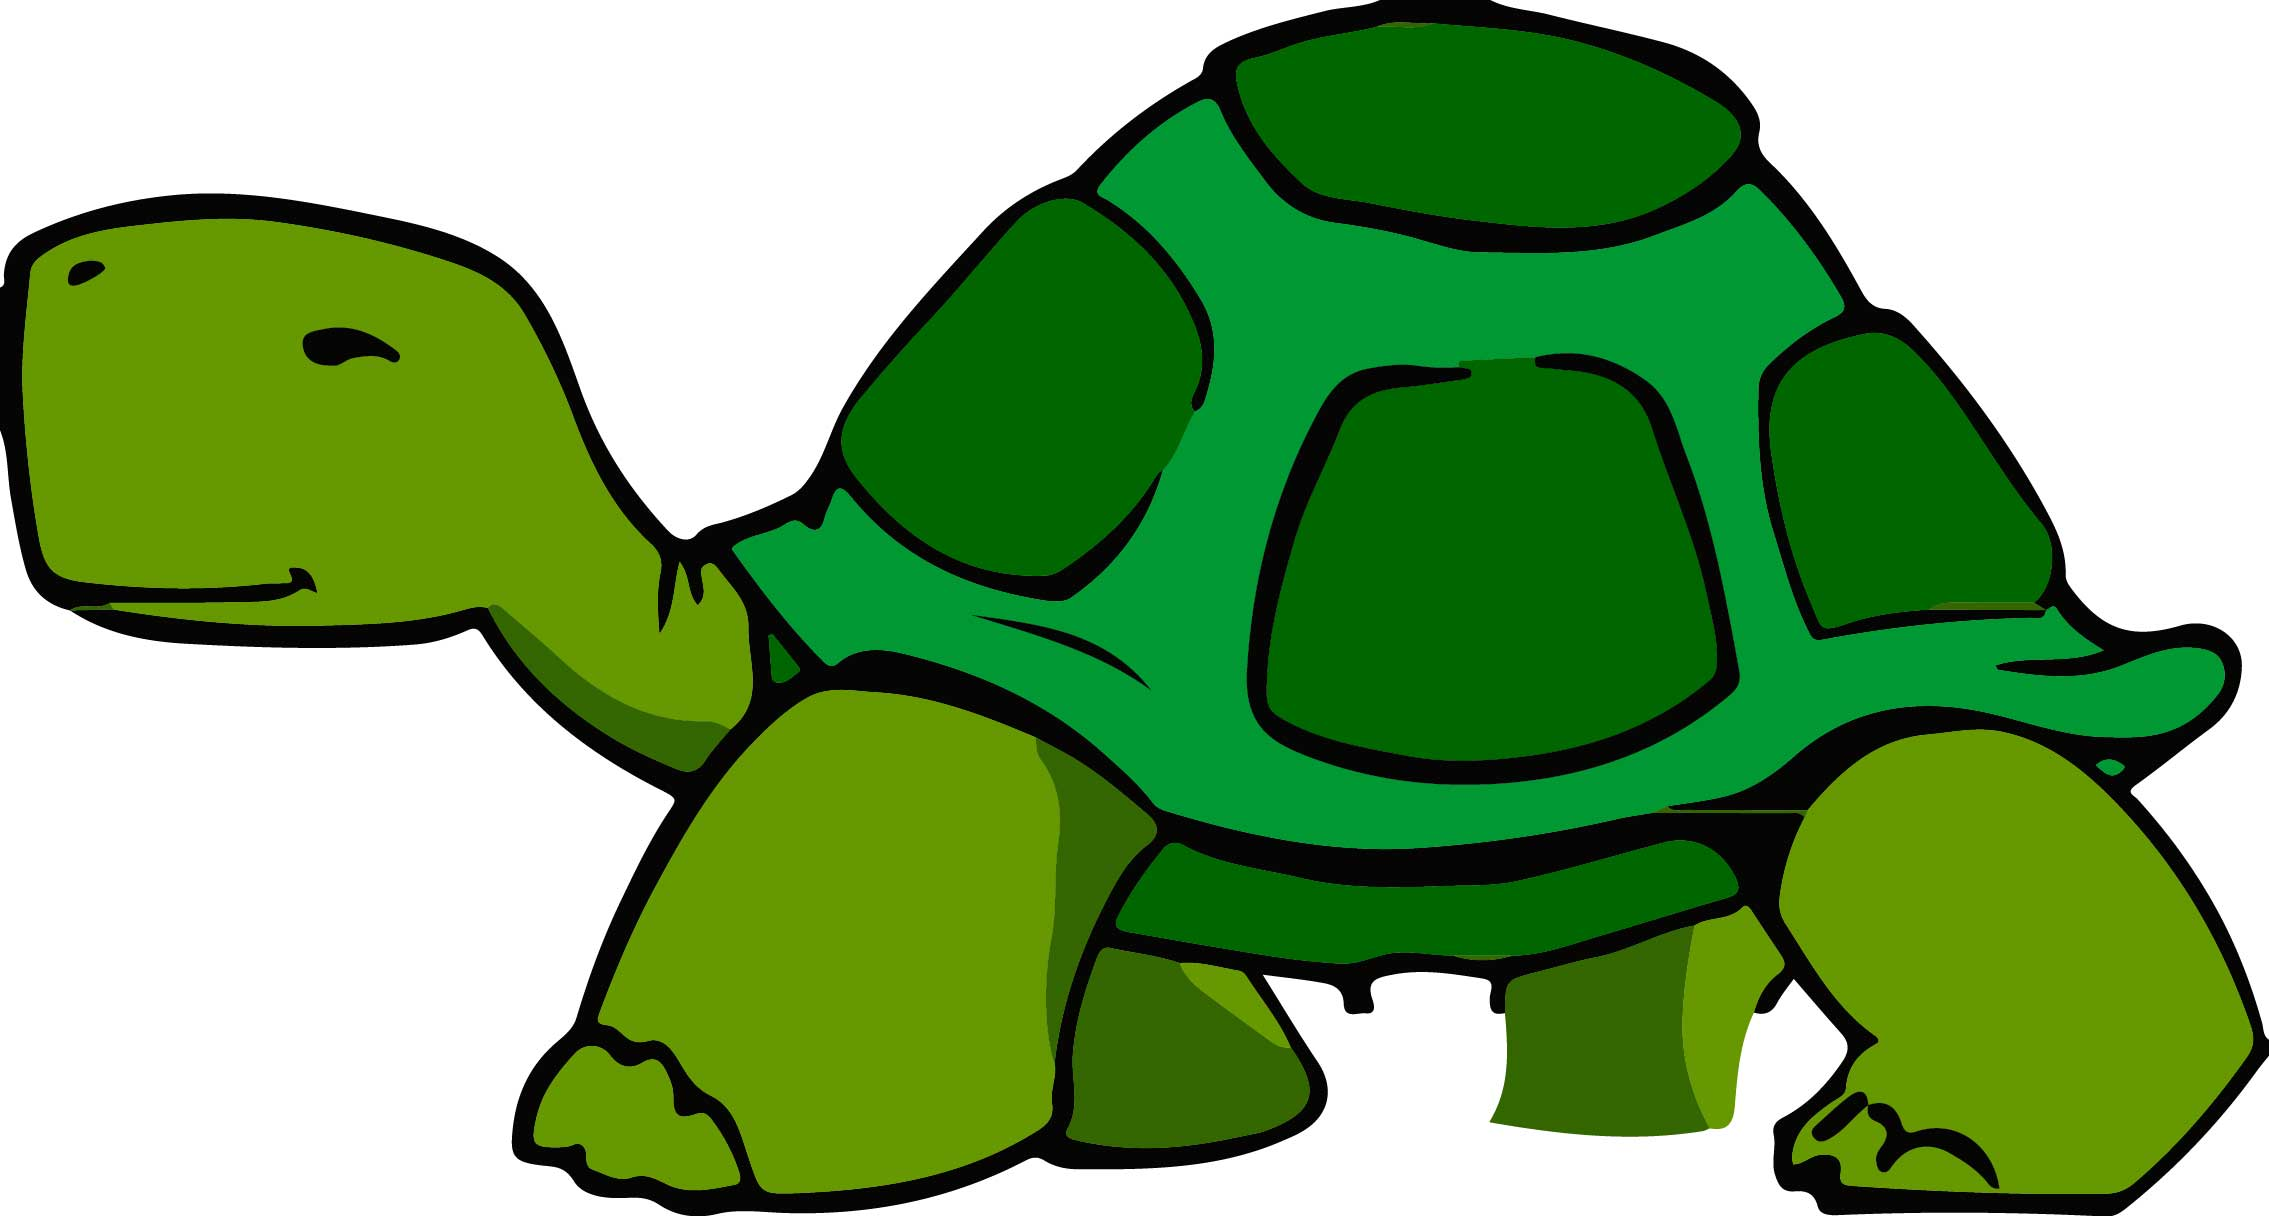 turtle - Slowly Changing Dimension چیست؟